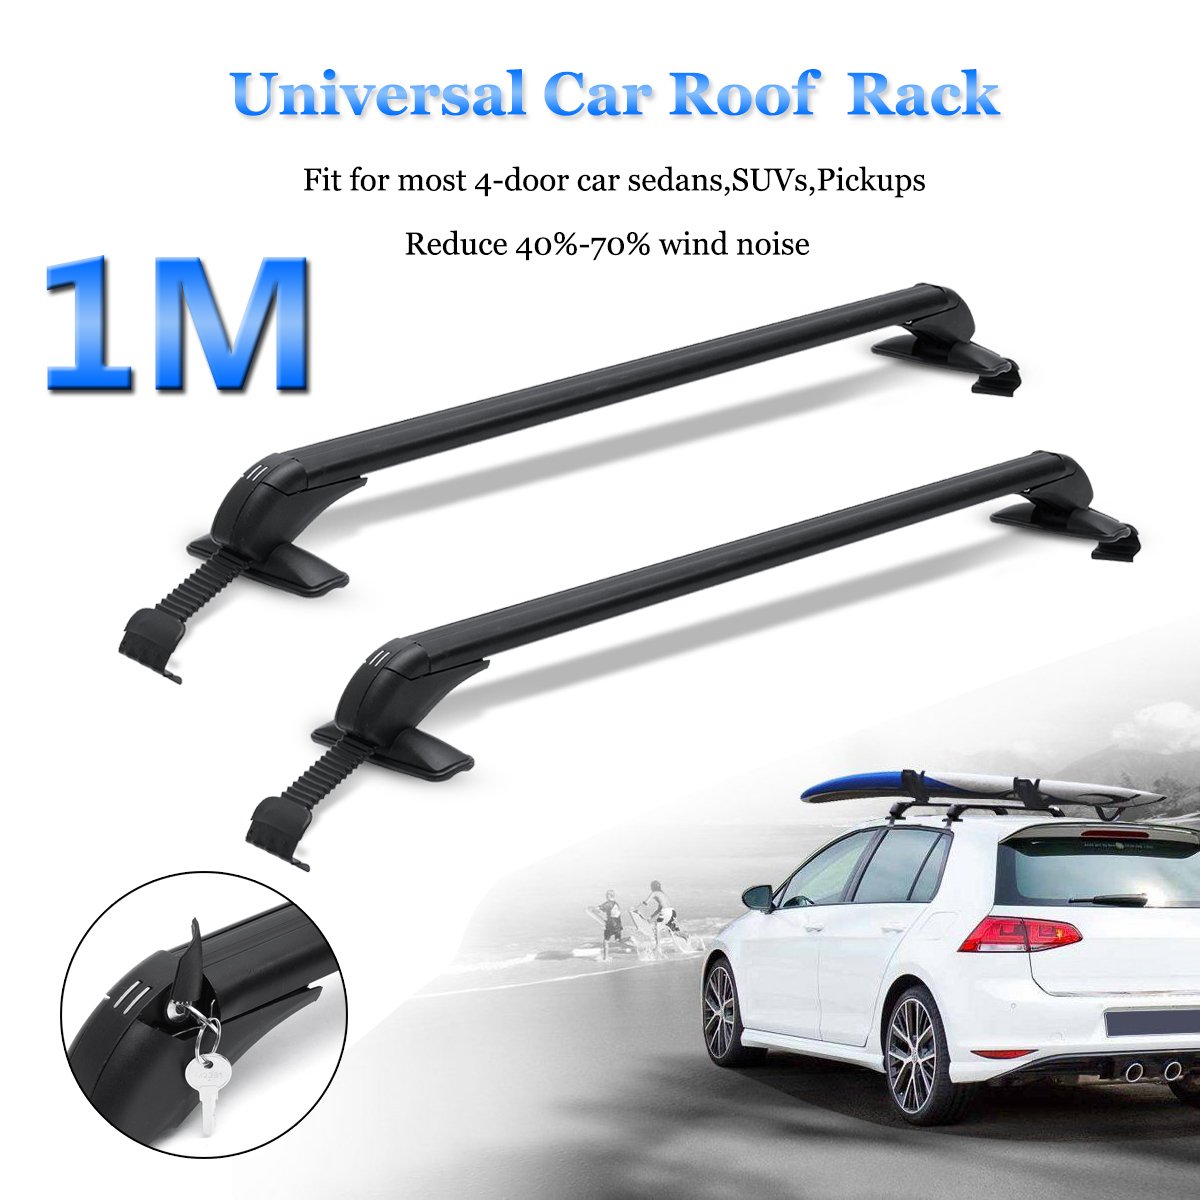 331 lb capacity car roof rack cross bars luggage carrier aluminum with lock anti theft for car roof trough width 39 4 41